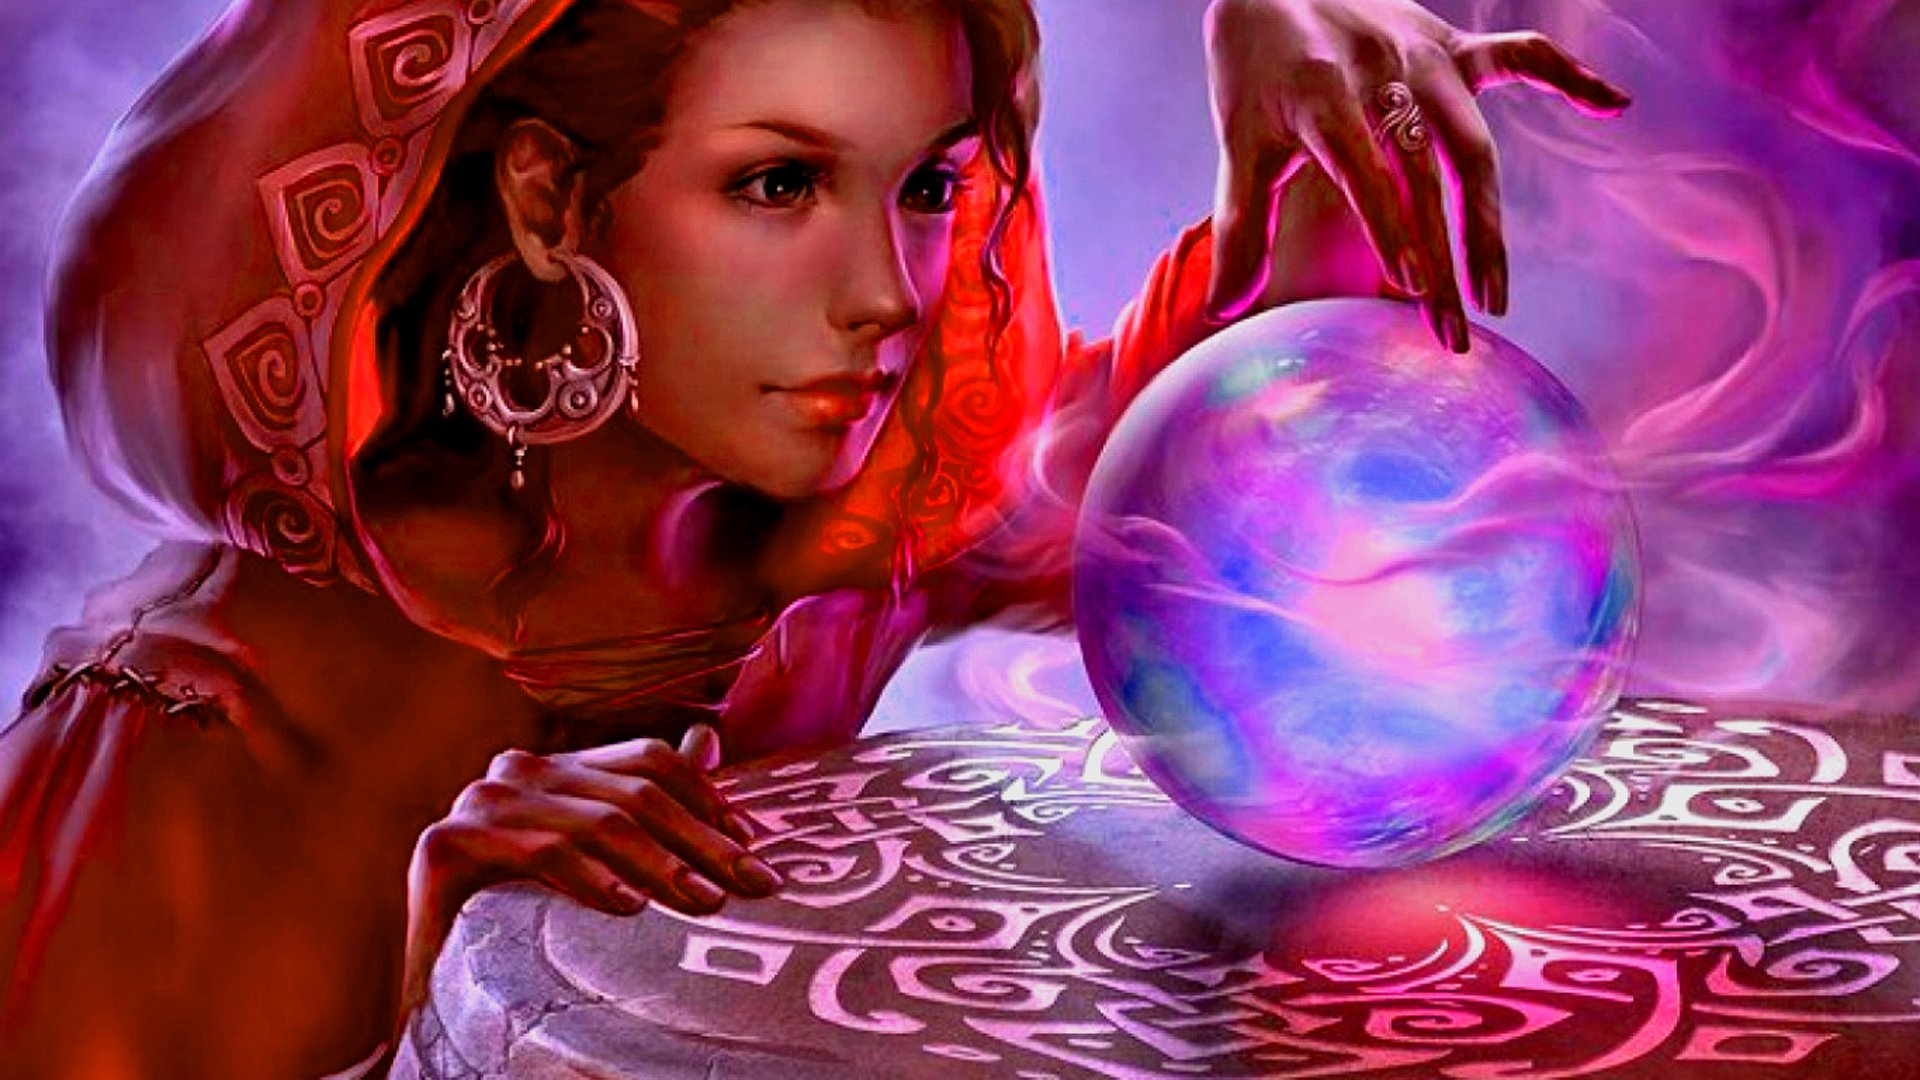 Fantasy - Magic  Woman Fantasy Gypsy Crystal Ball Wallpaper